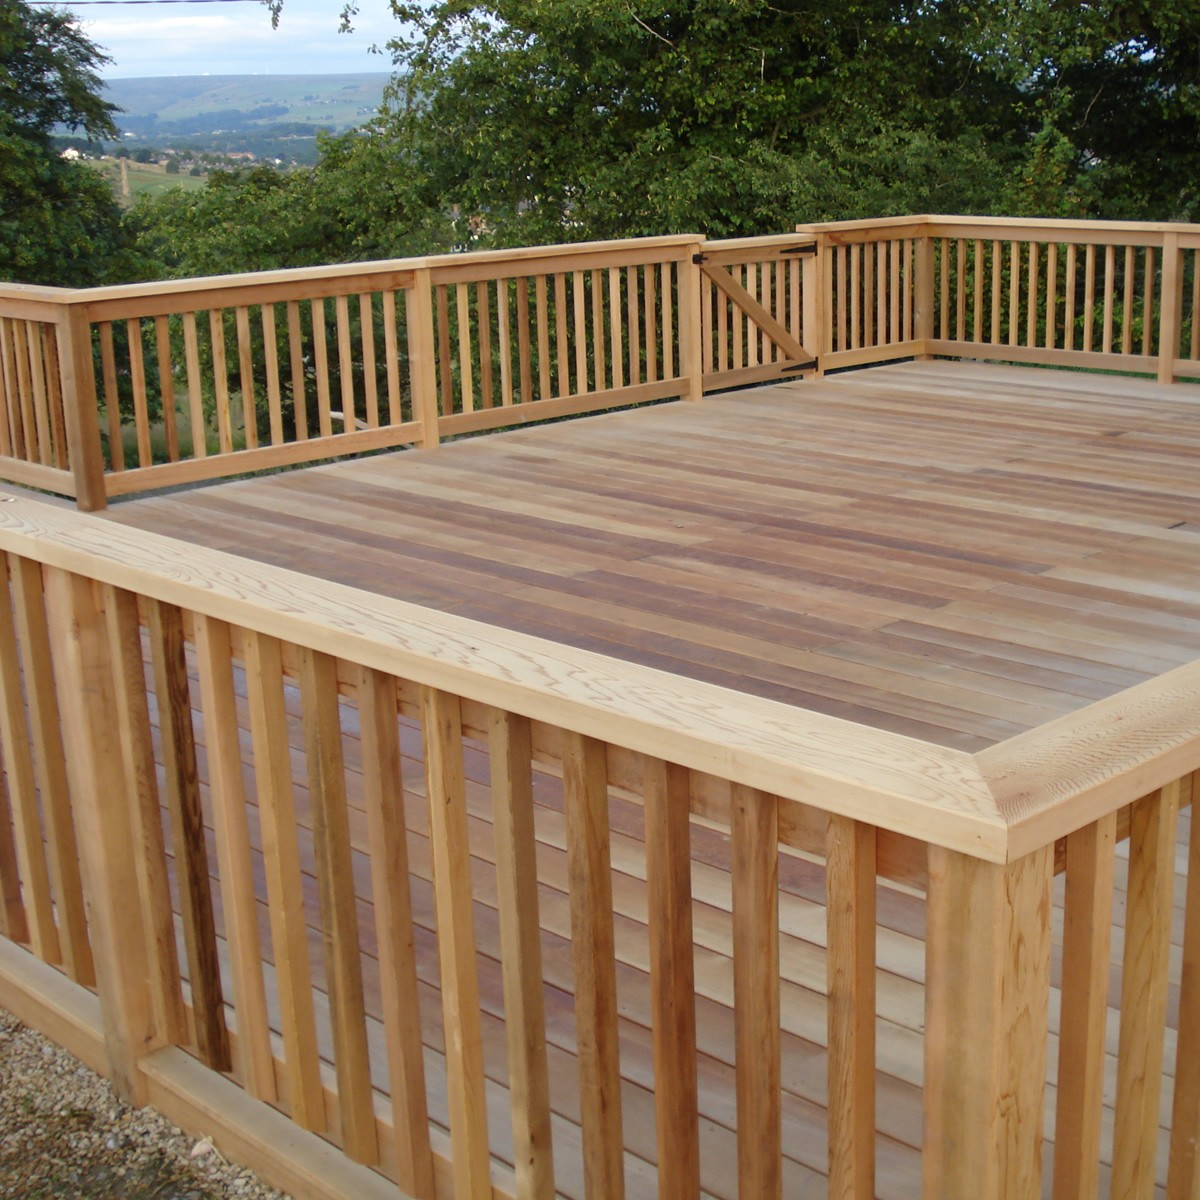 Wood Deck Railing Ideas and Floor